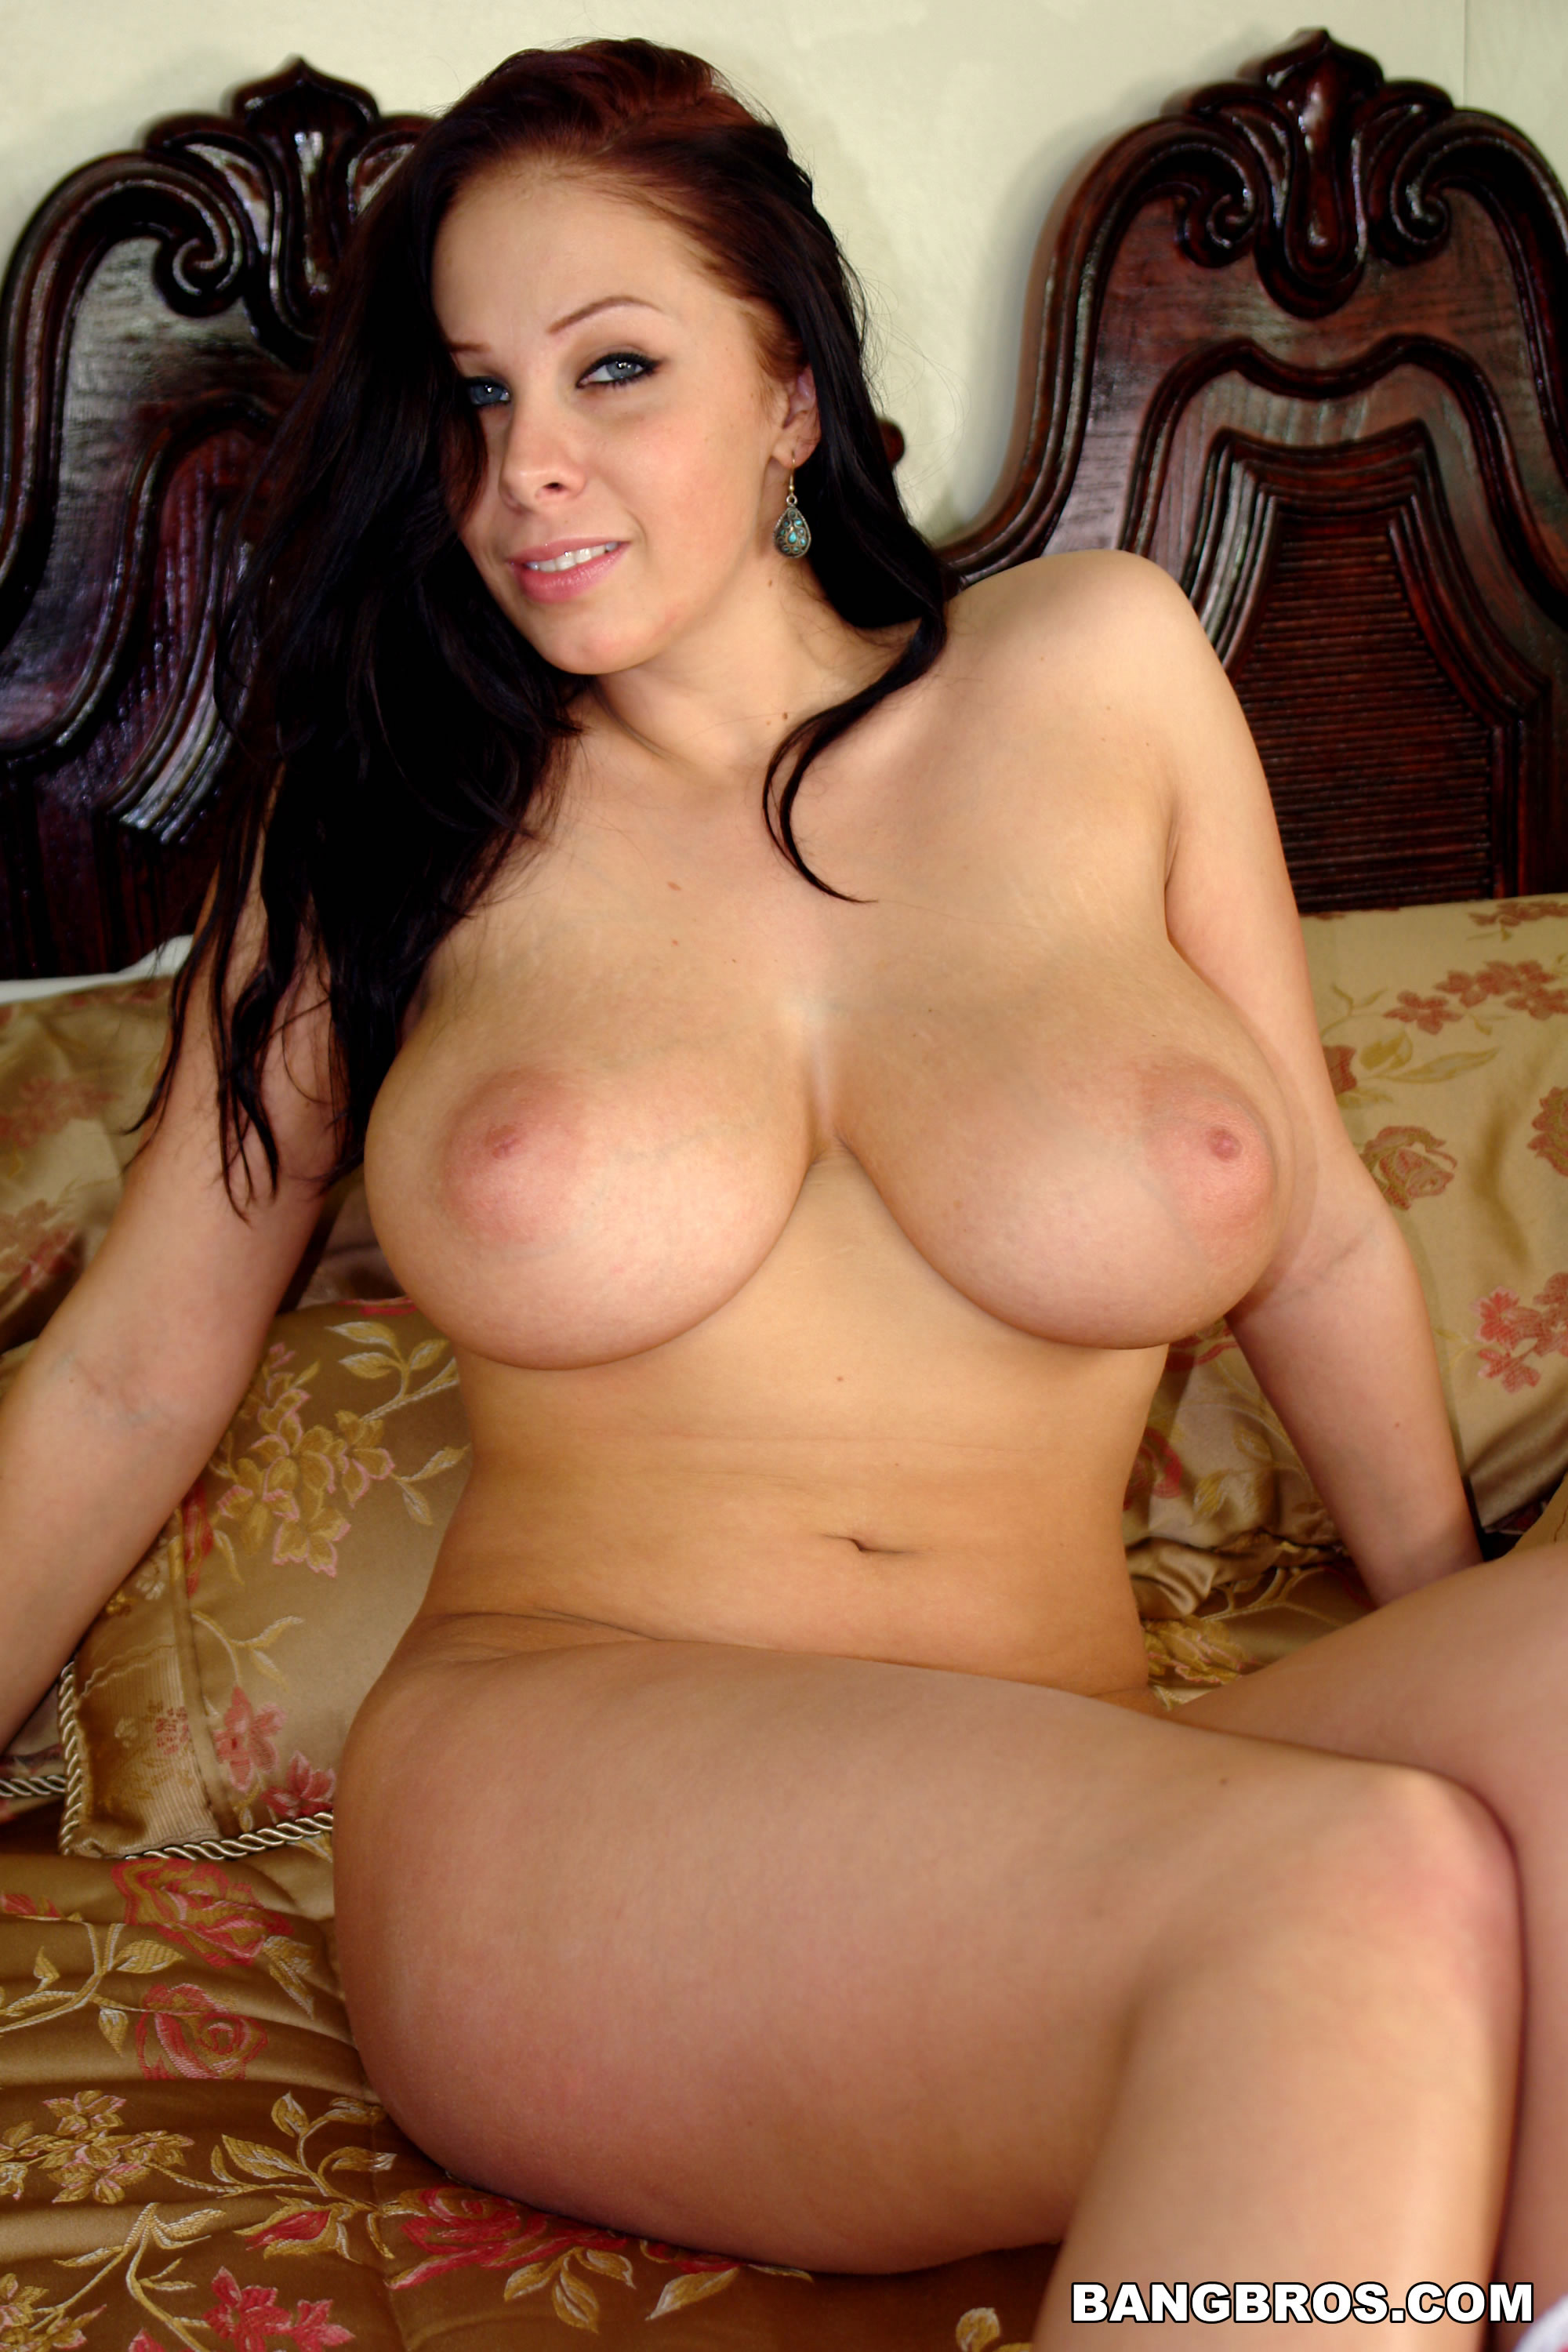 Gianna Michaels Nude Pictures Rating  87110-2844